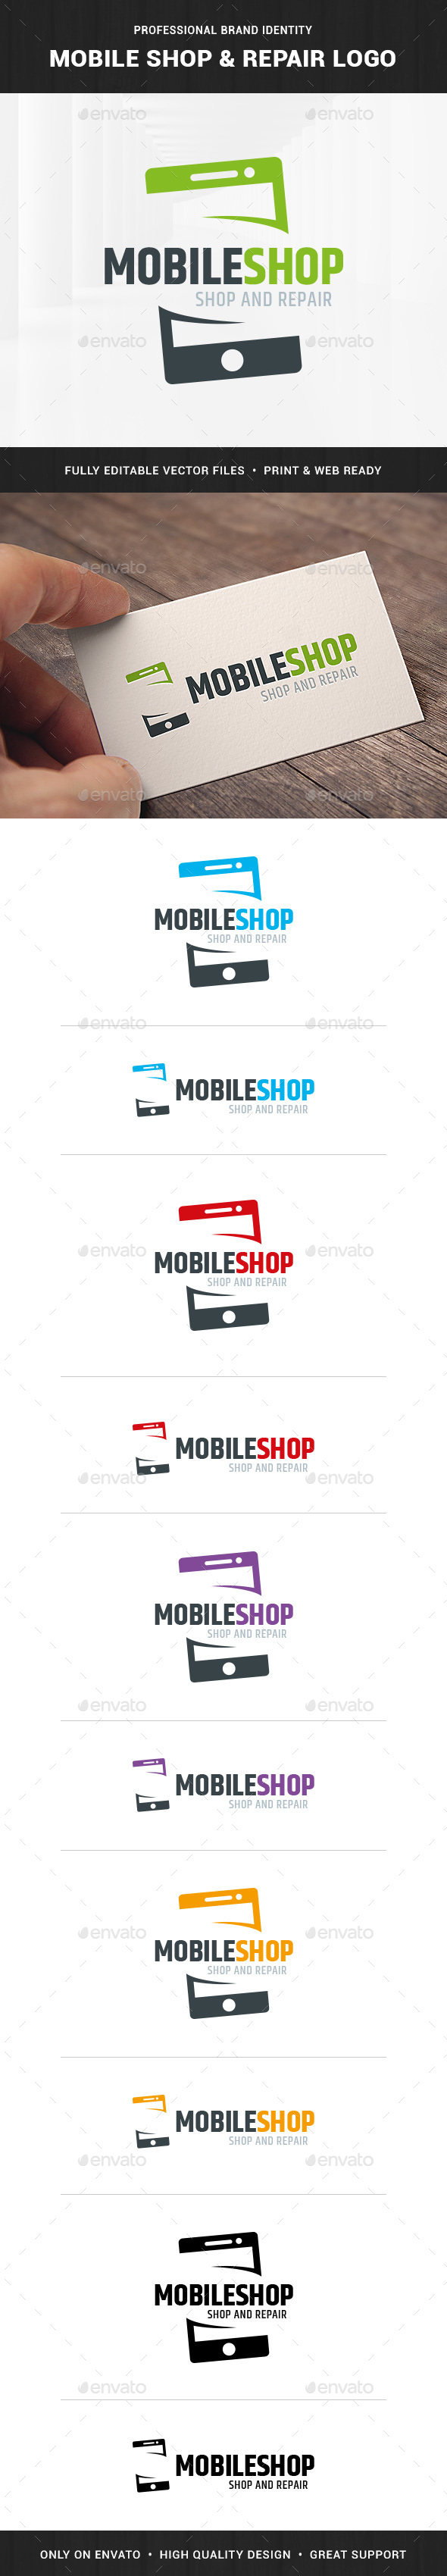 Mobile Shop & Repair Logo - Objects Logo Templates